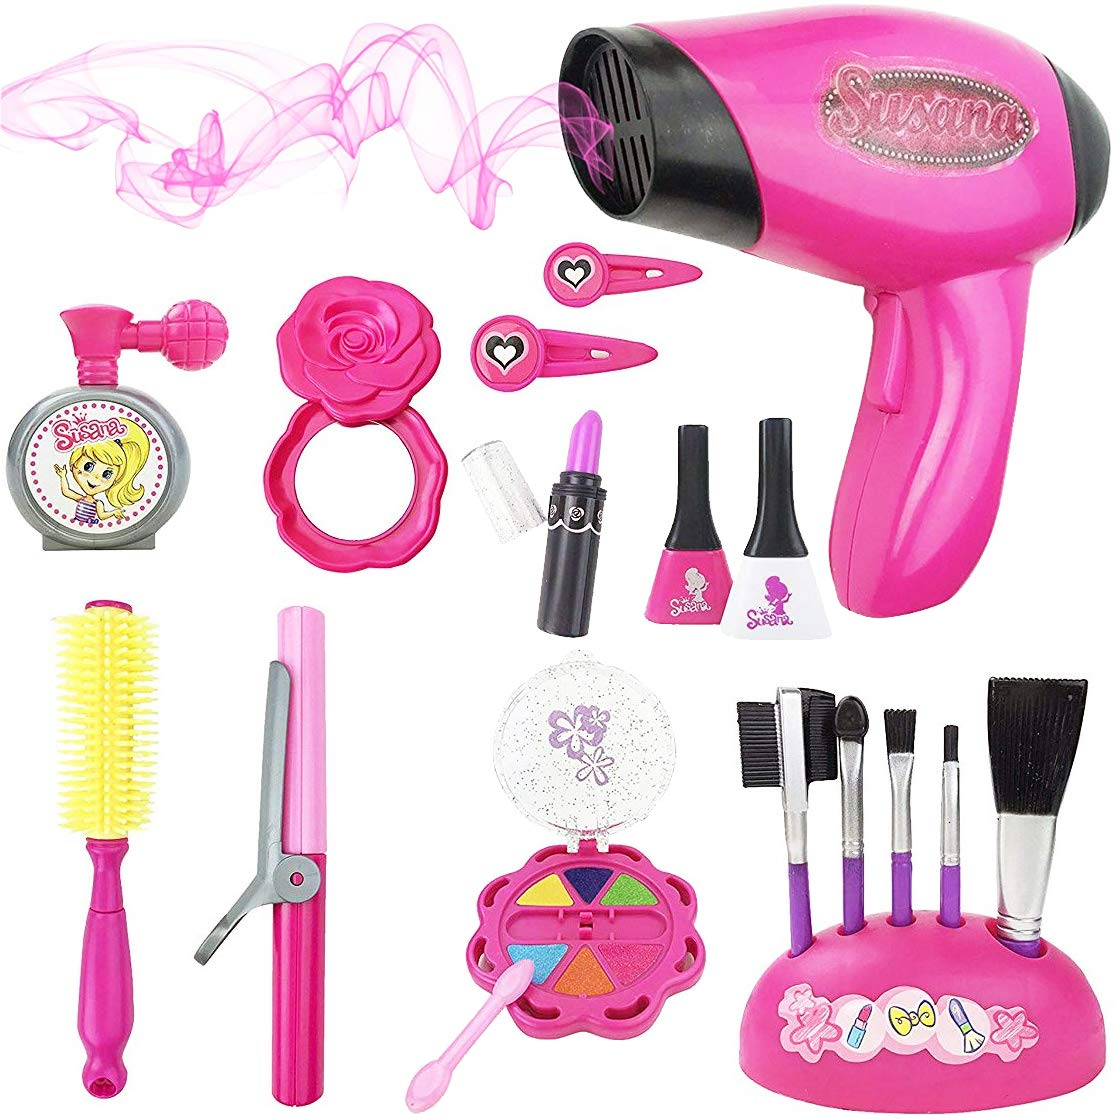 Liberty Imports Stylish Girls Beauty Stylist Set - Complete Play Pretend Hair Salon Station Gift Playset with Toy Blow Dryer, Curler, Mirror, Make Up & Other Styling Tools (18 Pieces) by Liberty Imports